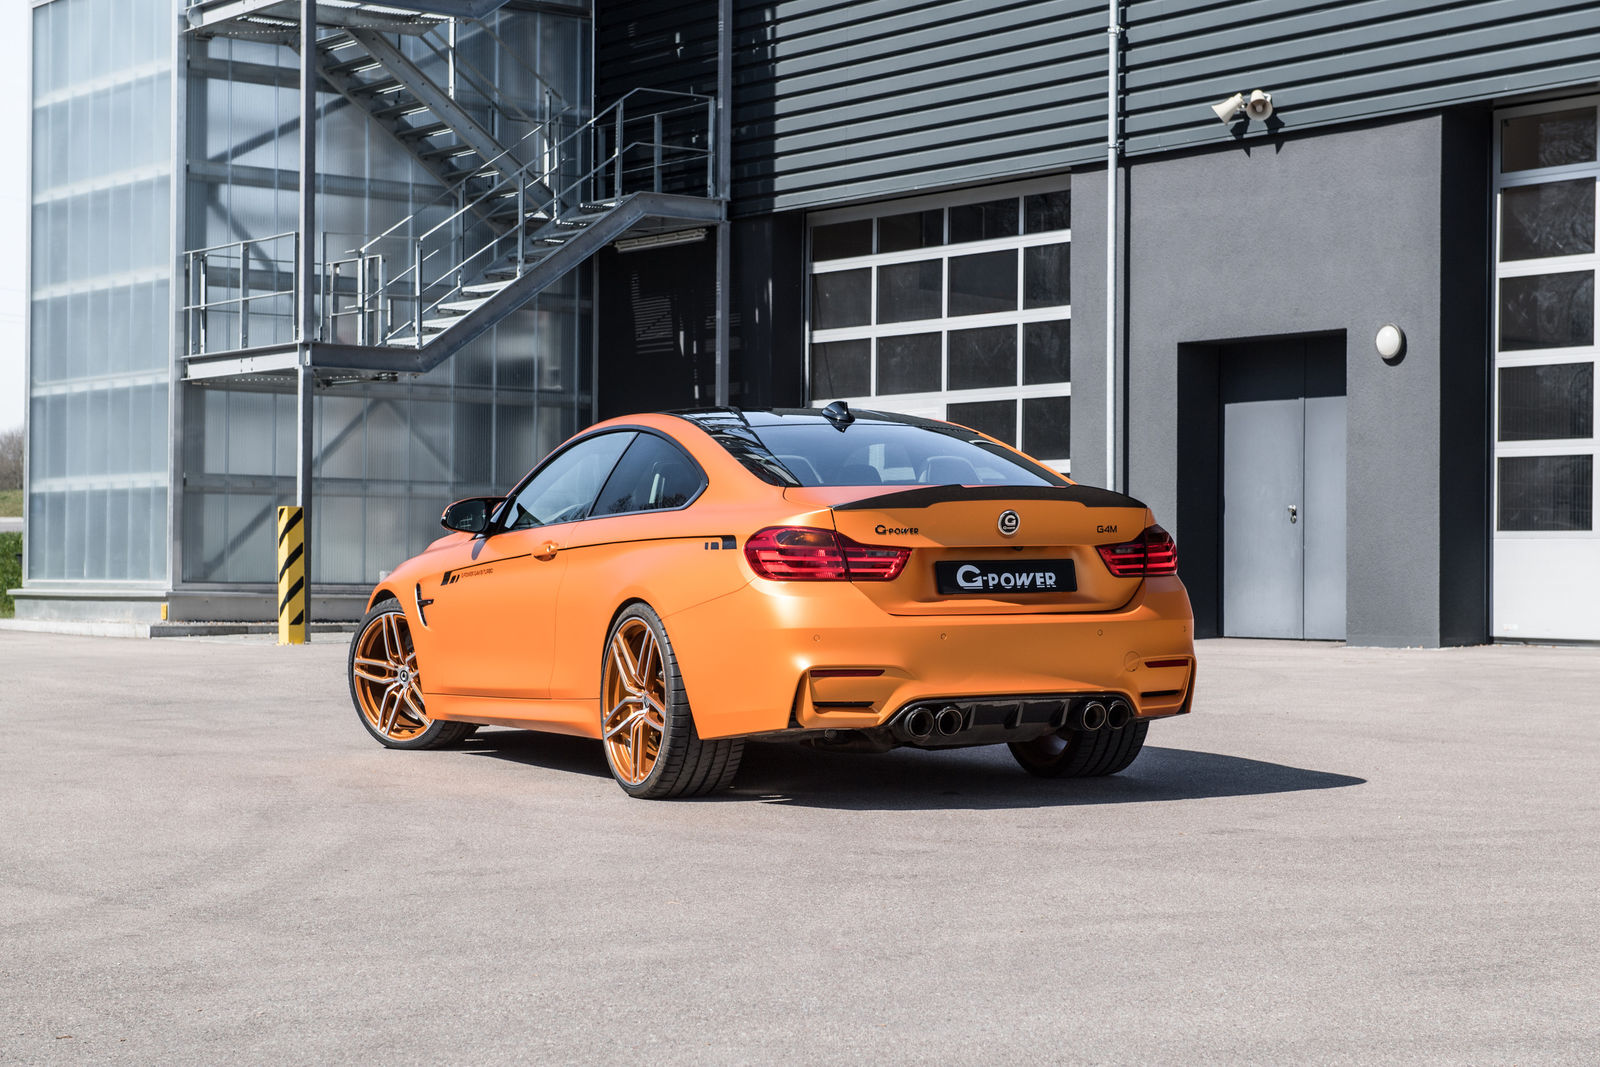 BMW M4 670ps by G-Power (3)